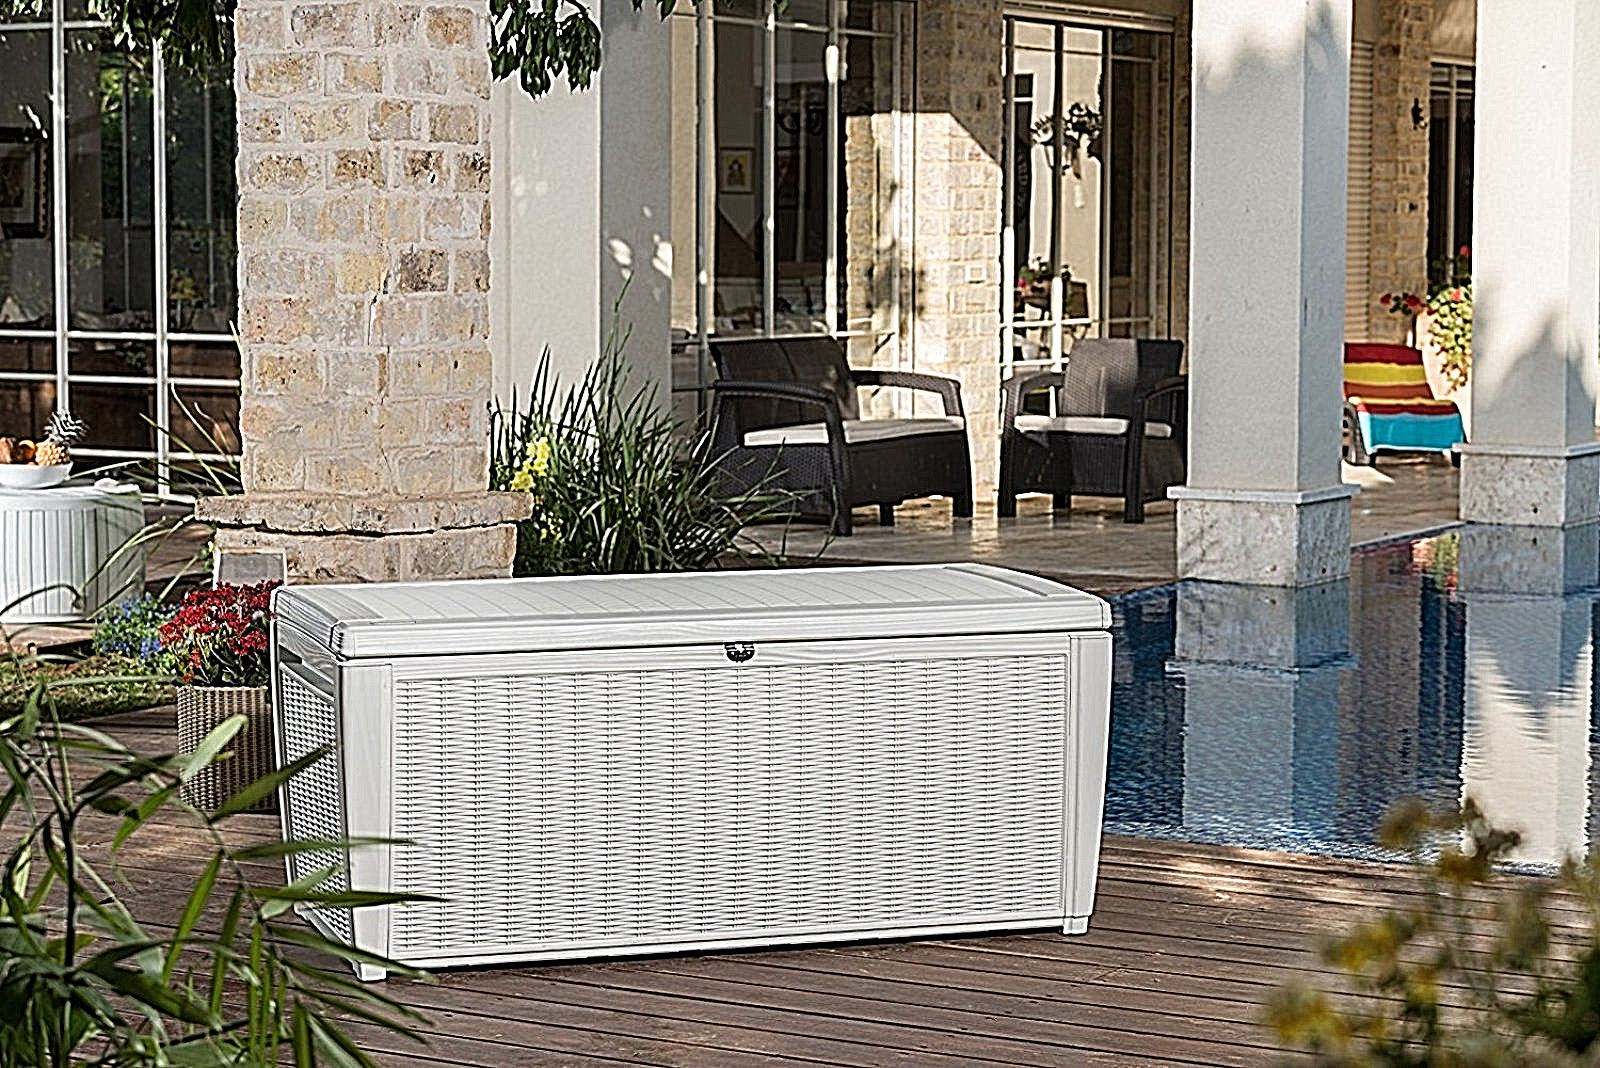 Keter Box Xxl 511 L Garden Storage Outdoor Patio Keter And 50 Similar Items